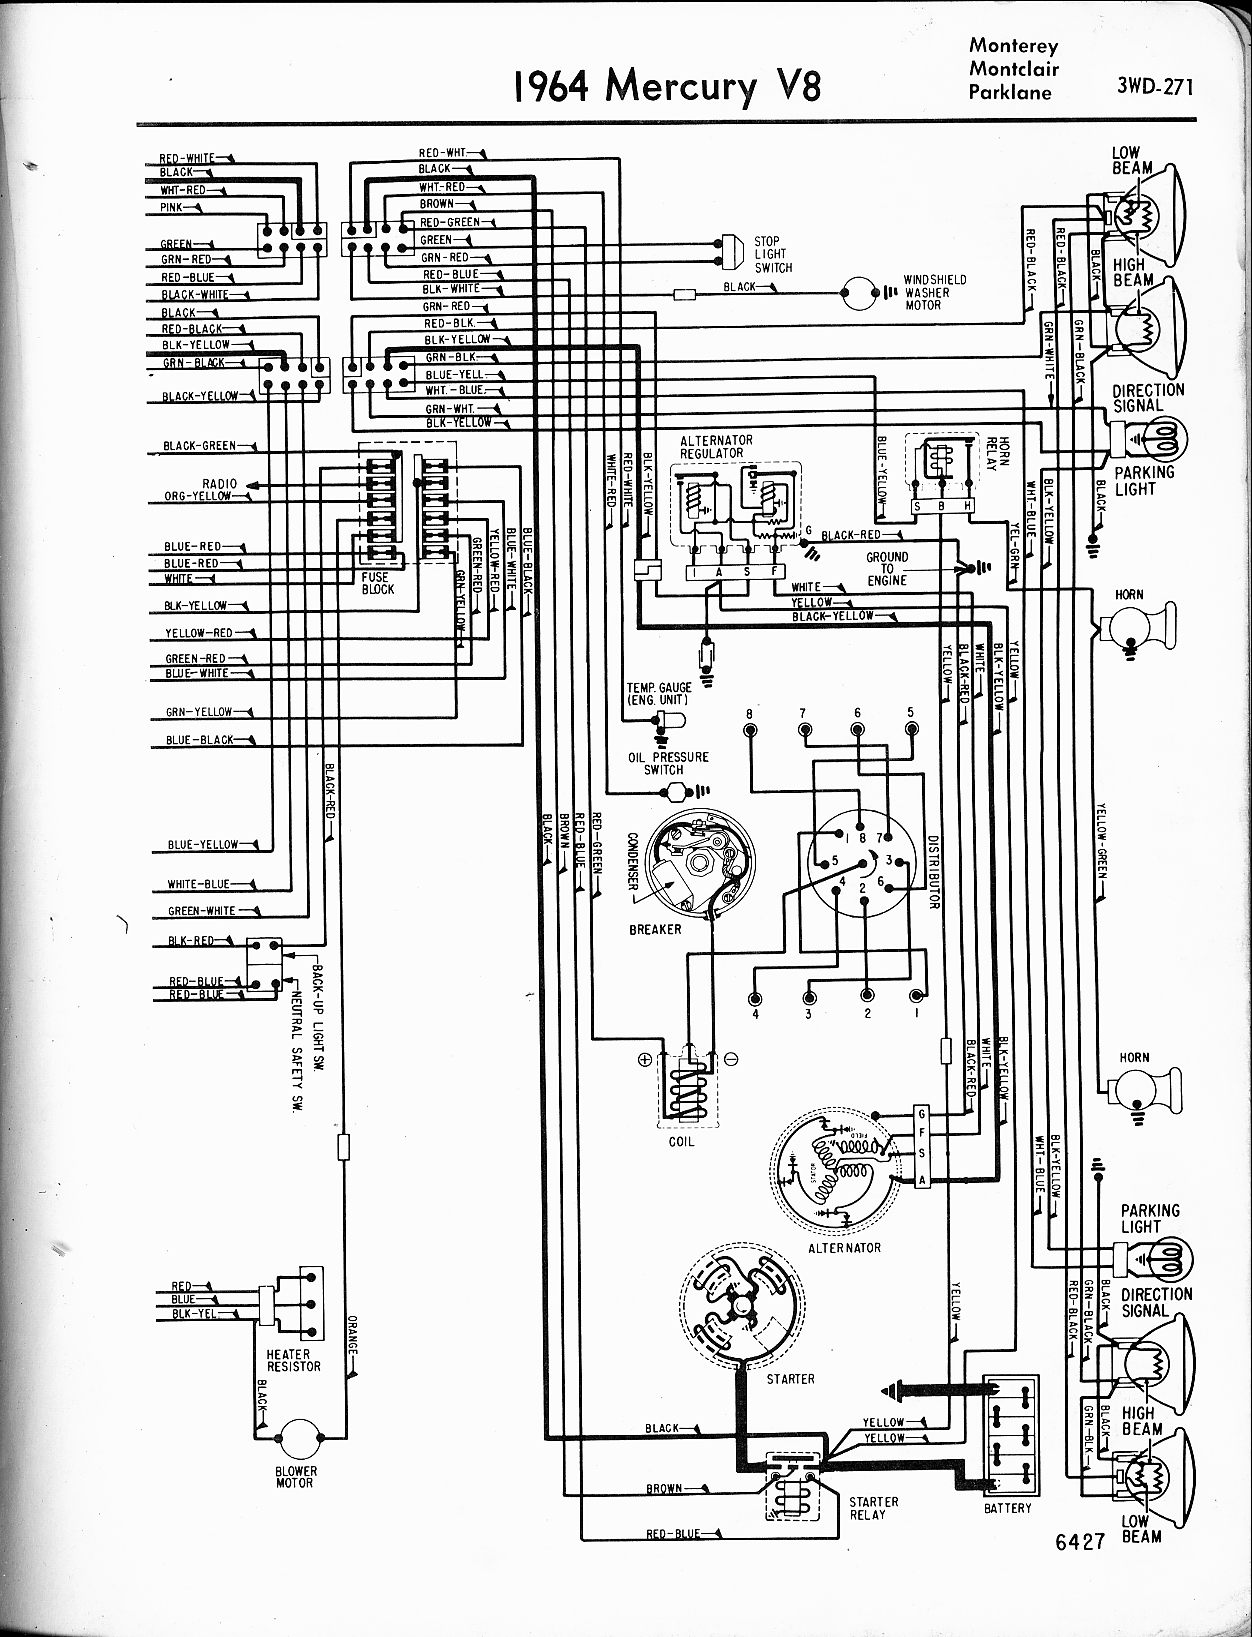 MWire5765 271 mercury wiring diagrams the old car manual project wiring diagram for 1966 ford fairlane at gsmx.co